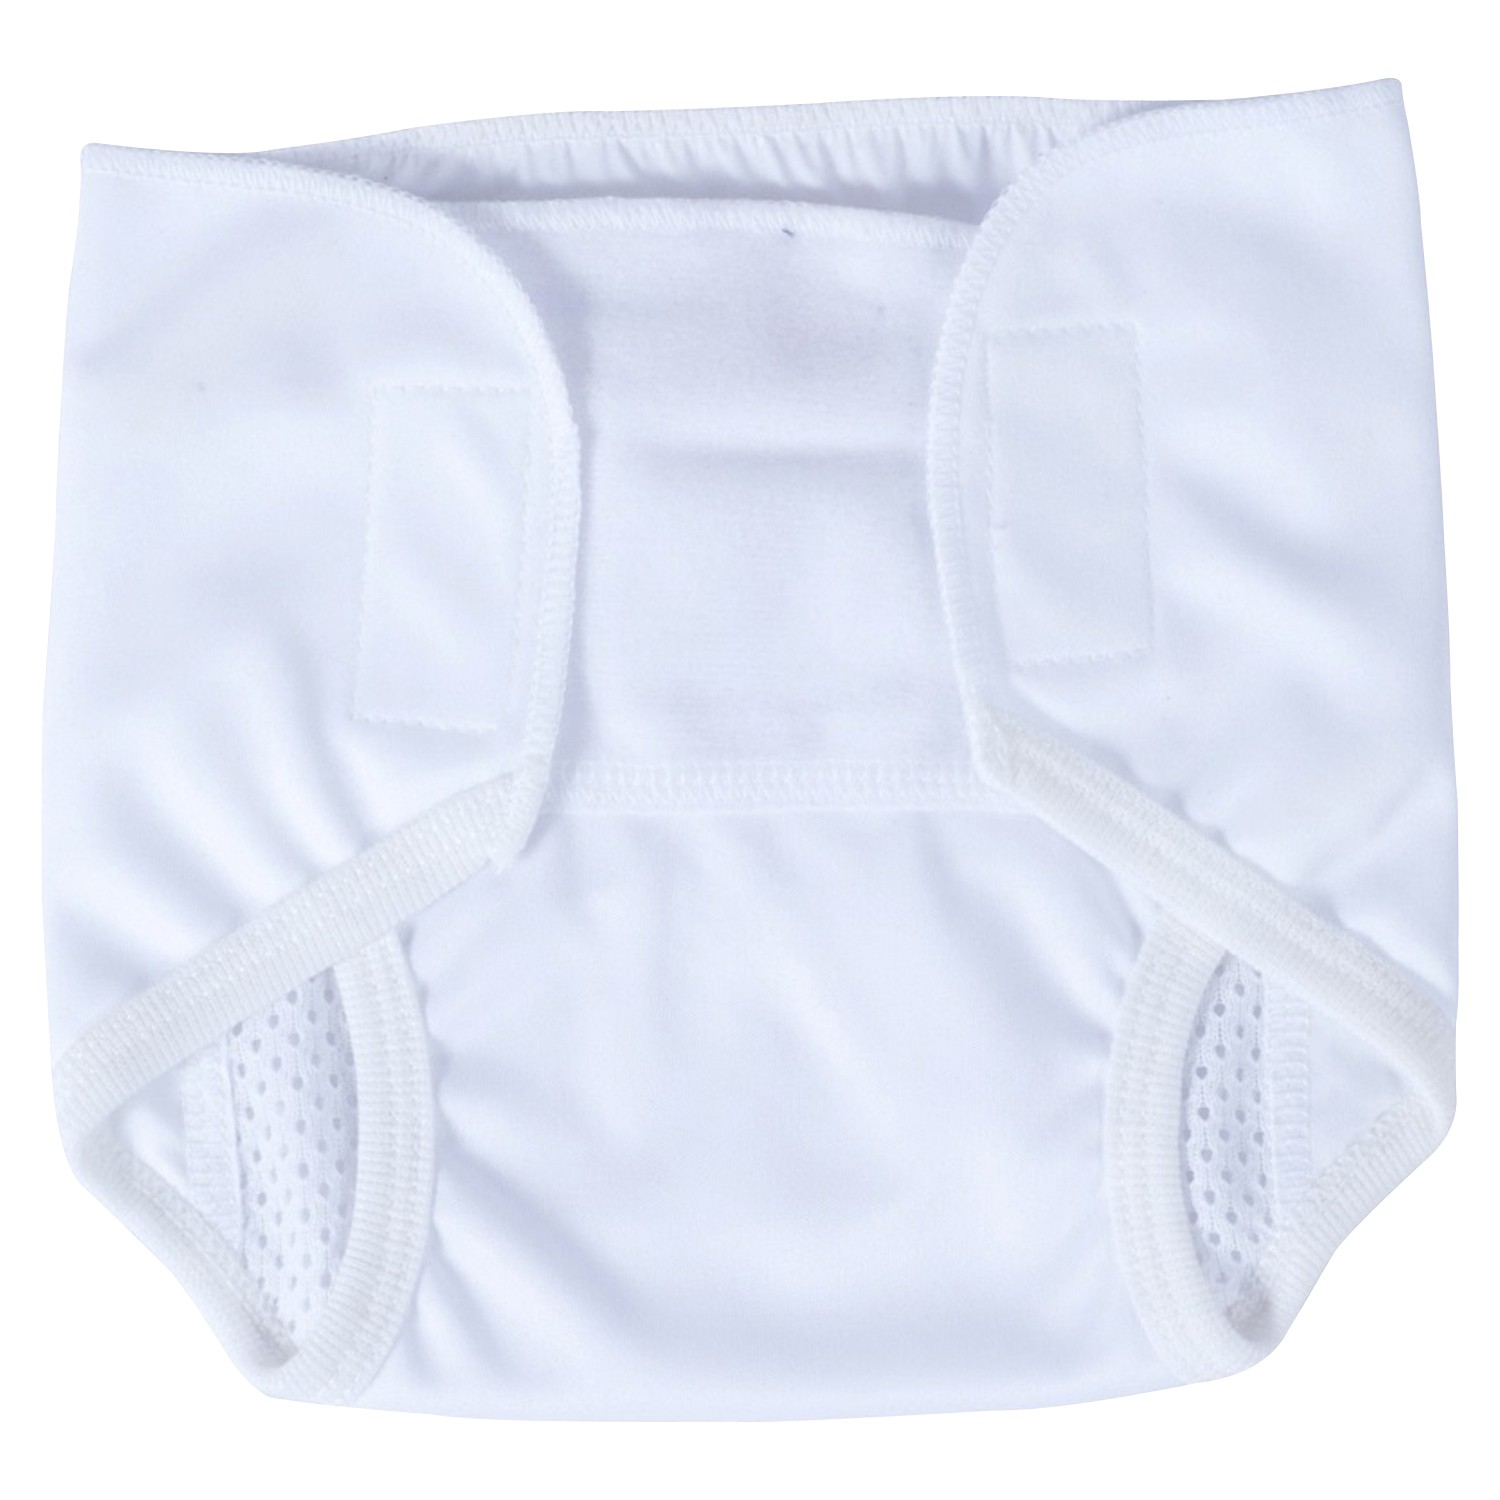 Tollyjoy 3103 Newborn Pant Style Diaper White